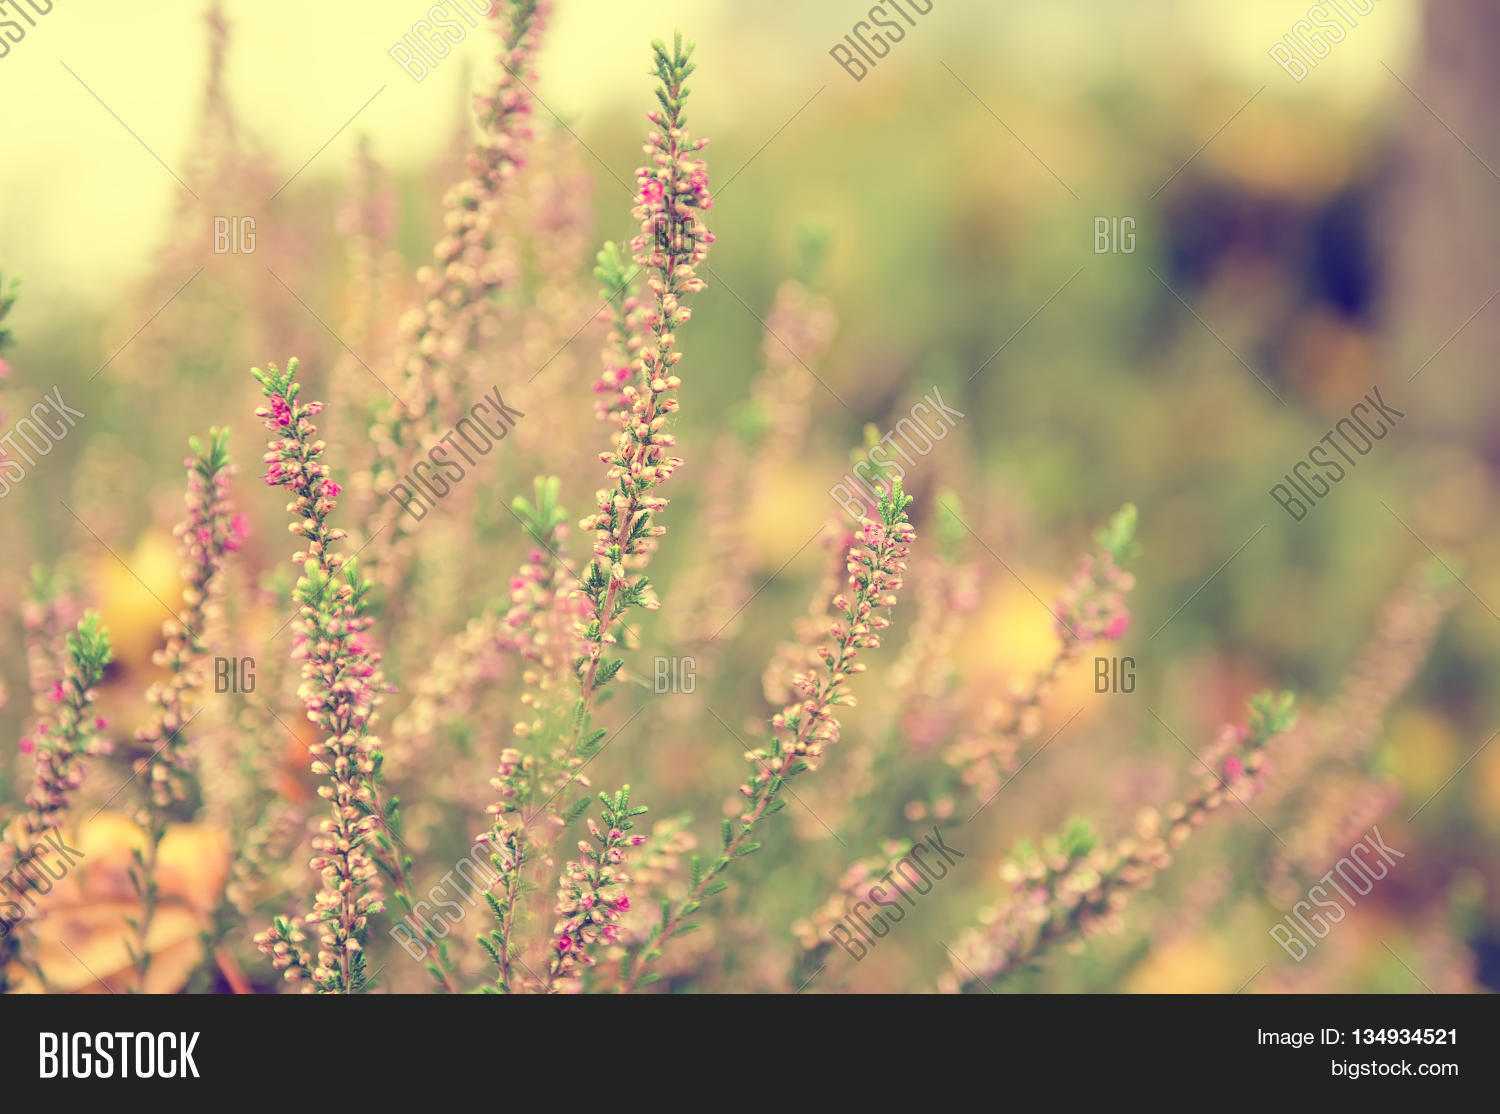 Blooming Beautiful Image Photo Free Trial Bigstock